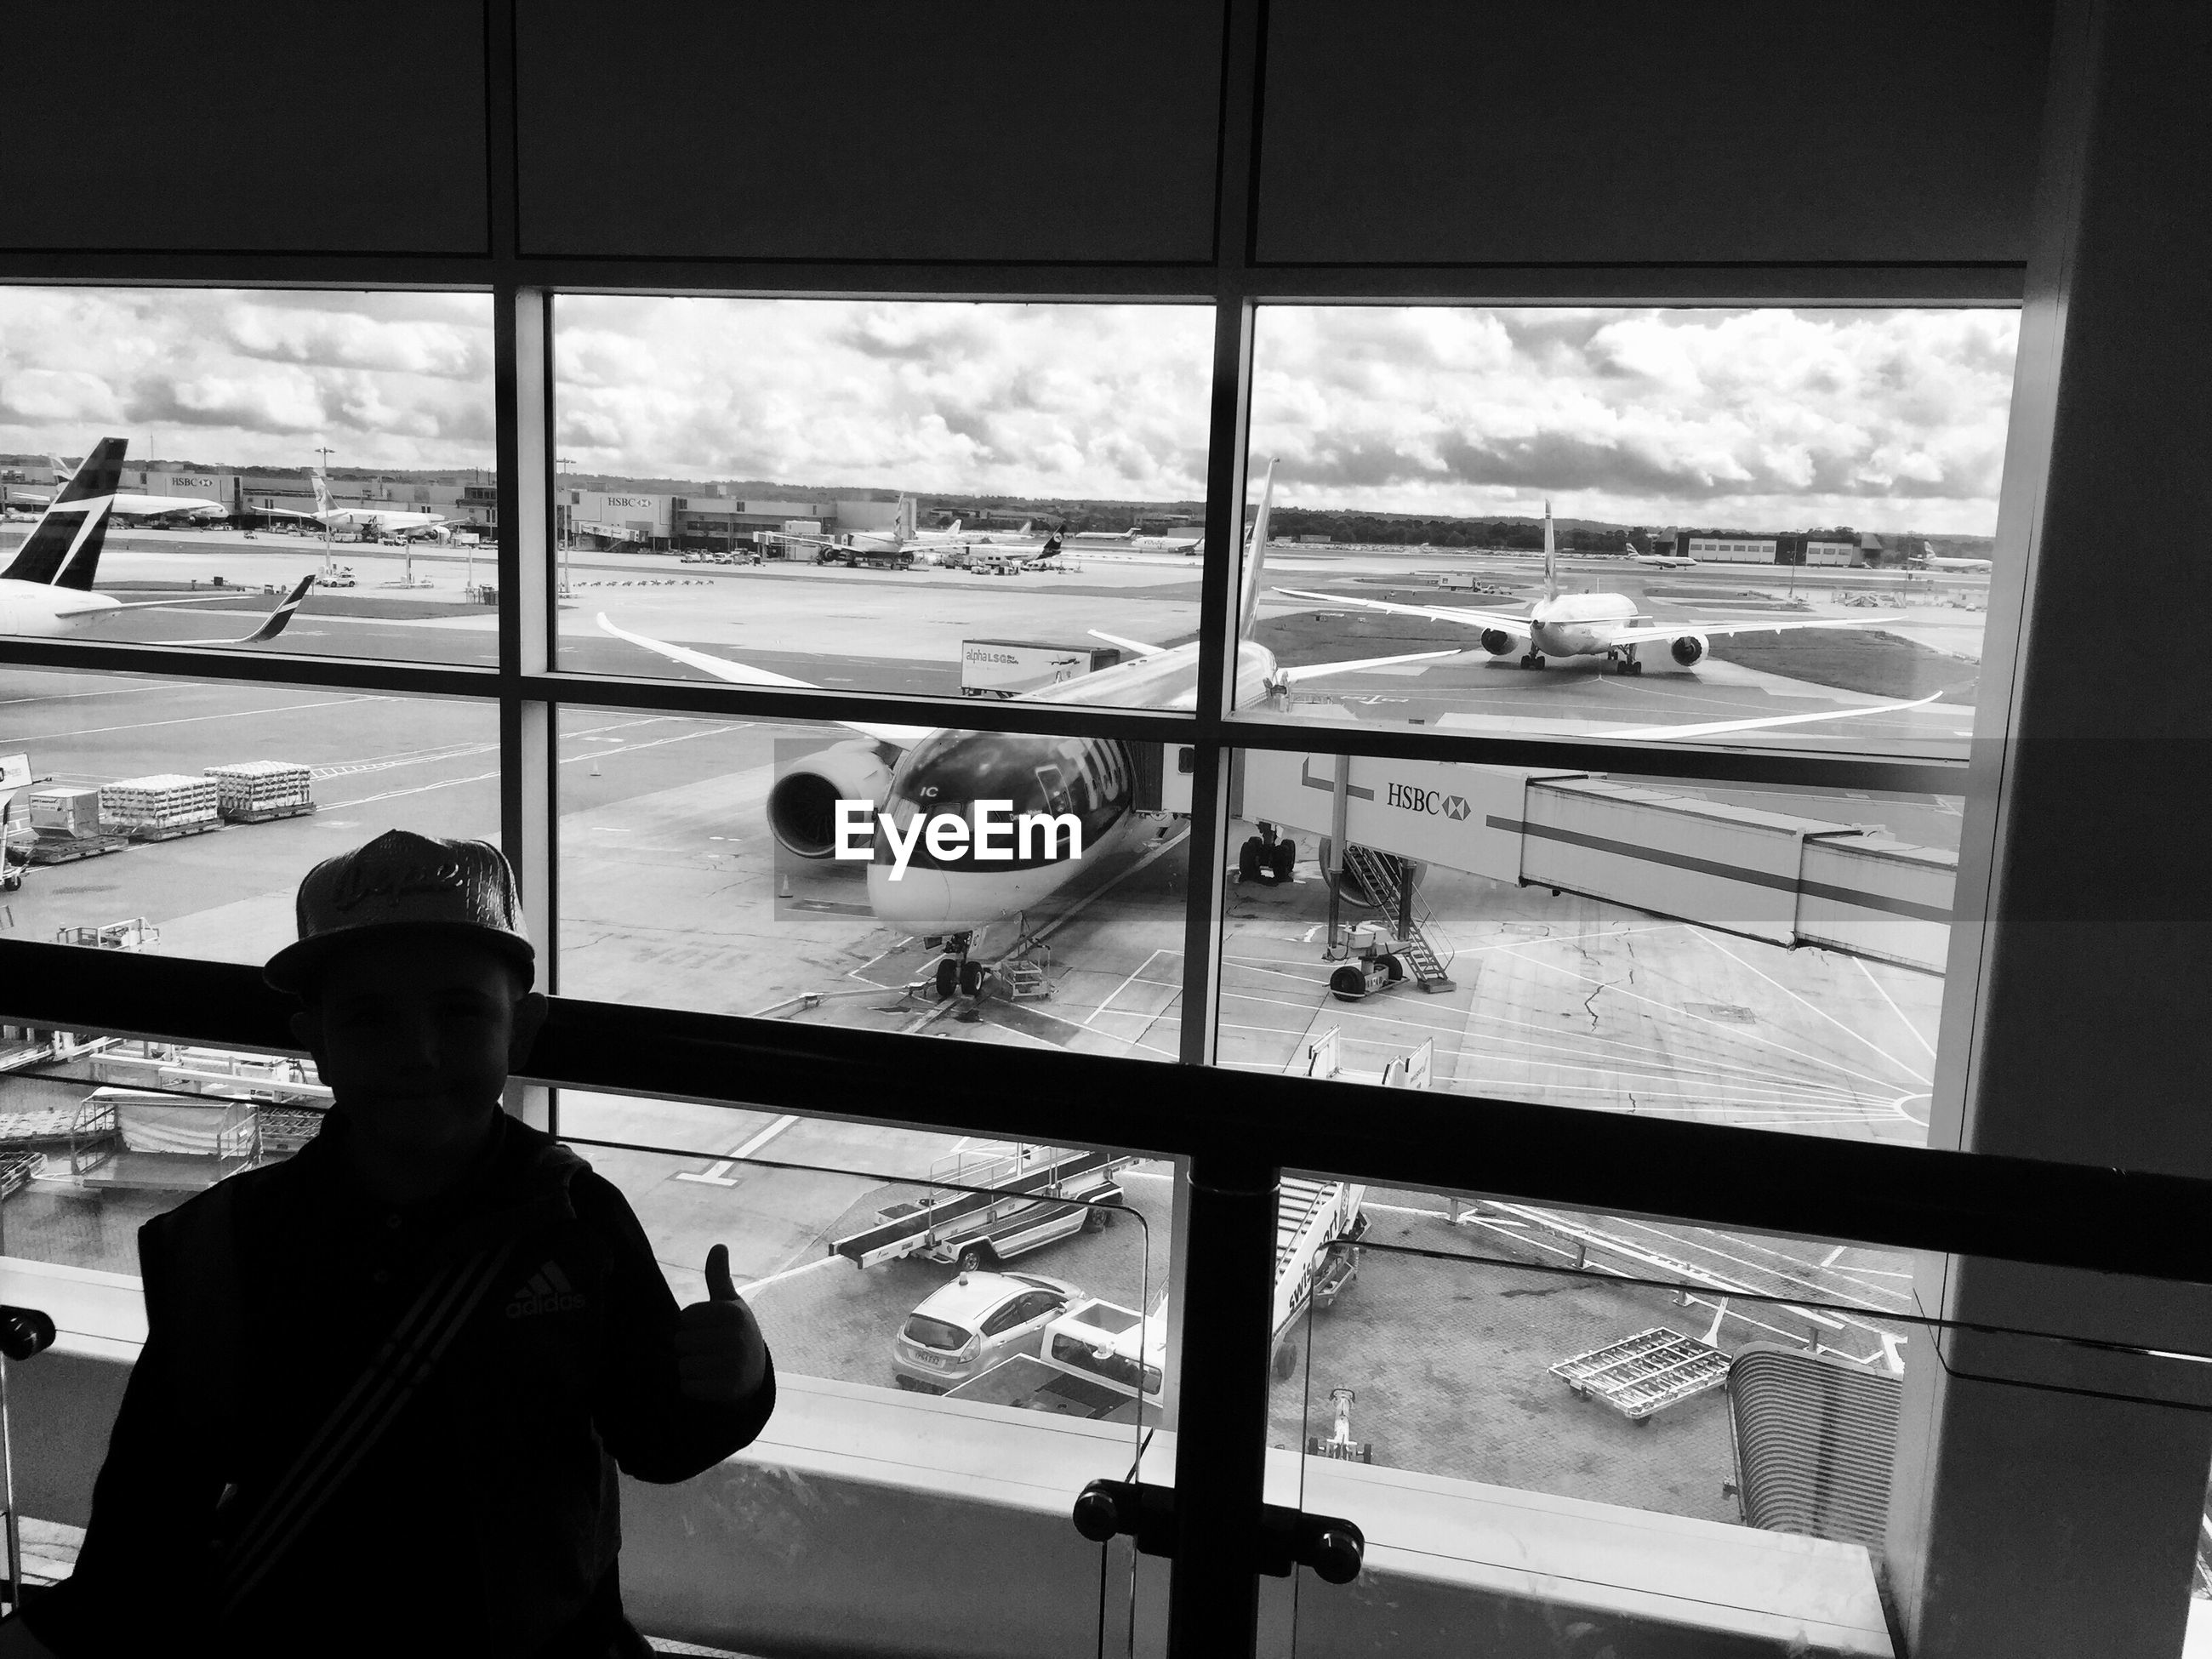 window, transportation, airport, travel, airplane, indoors, real people, mode of transport, looking through window, public transportation, sky, men, one person, day, standing, occupation, airport runway, window washer, people